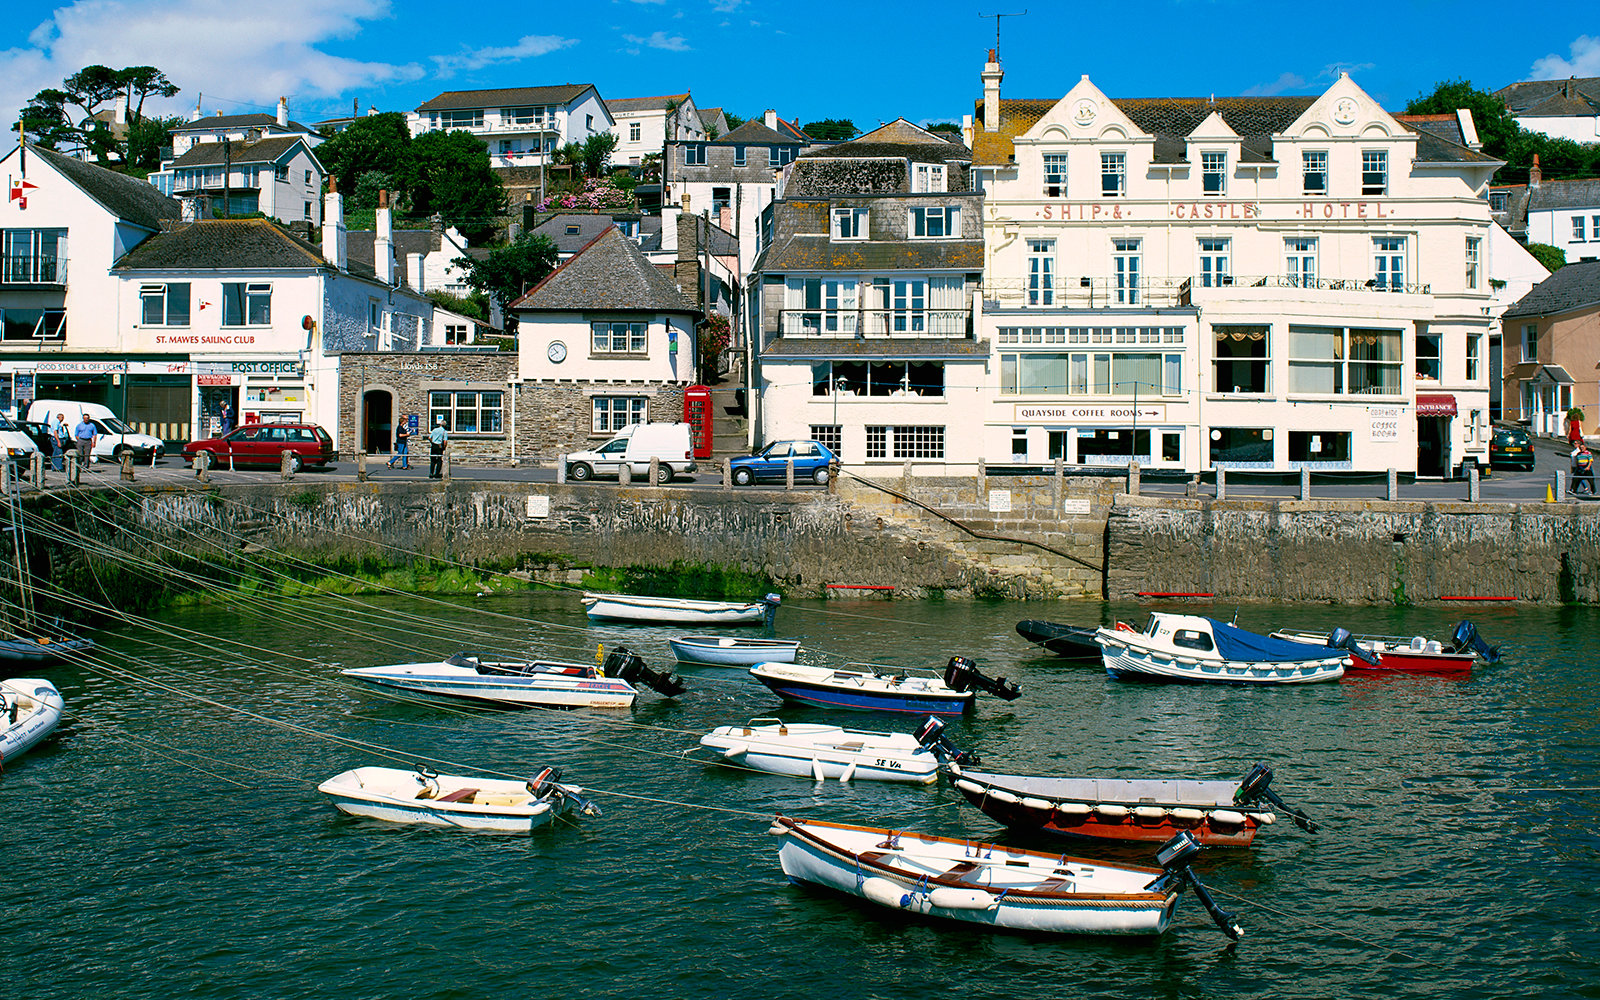 boats in the harbor in St. Mawes, England